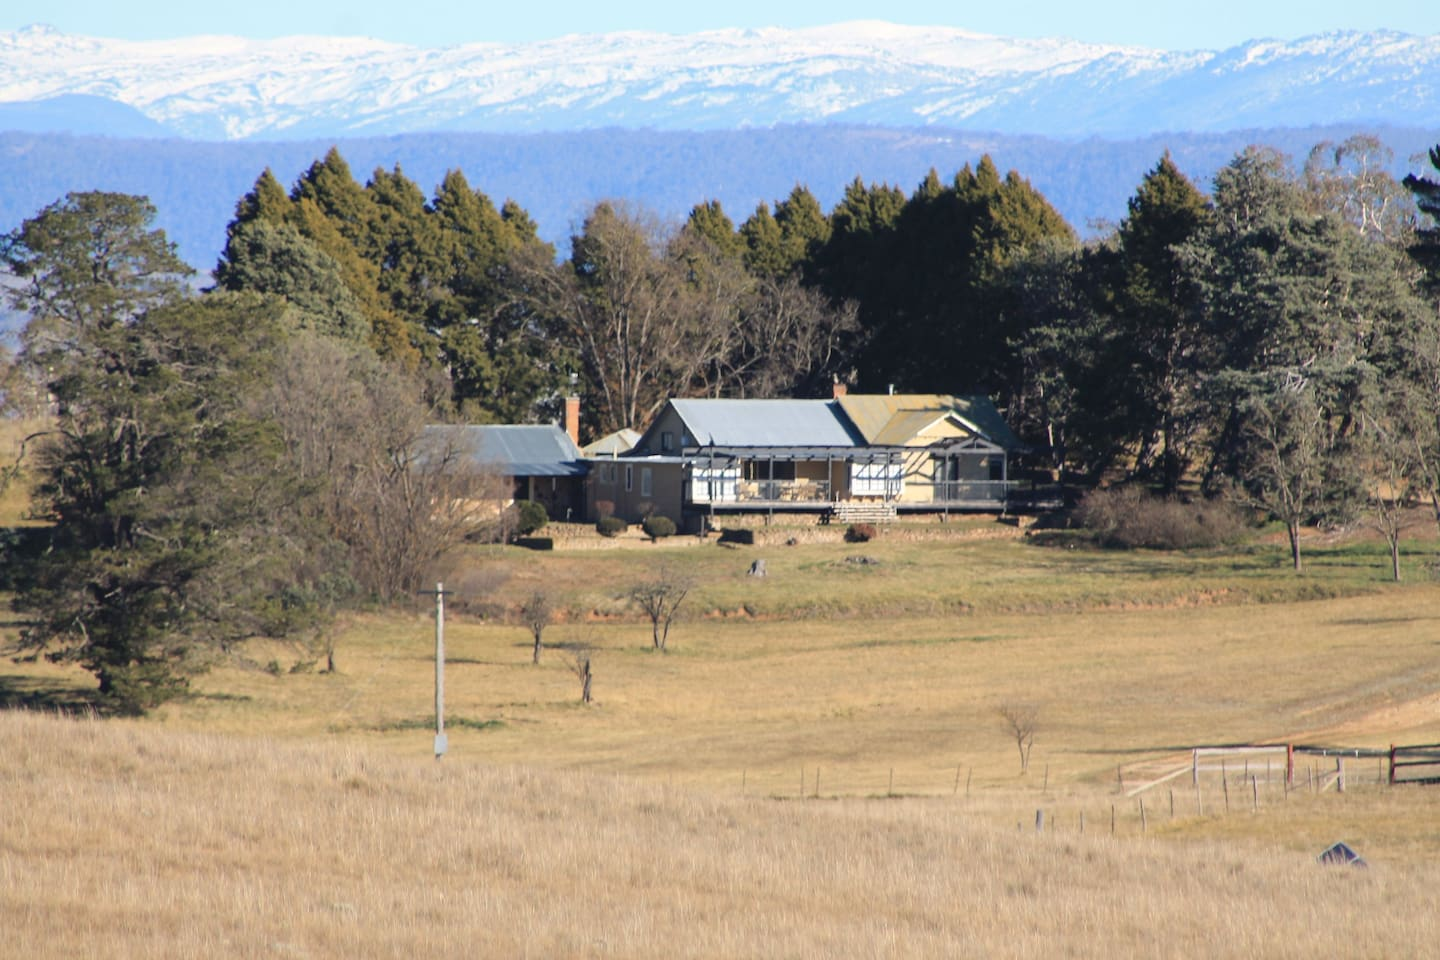 Property with Snowy Mountains in distance - 1hr 15Mins - back road via Dalgety to Perisher/Thredbo car parks